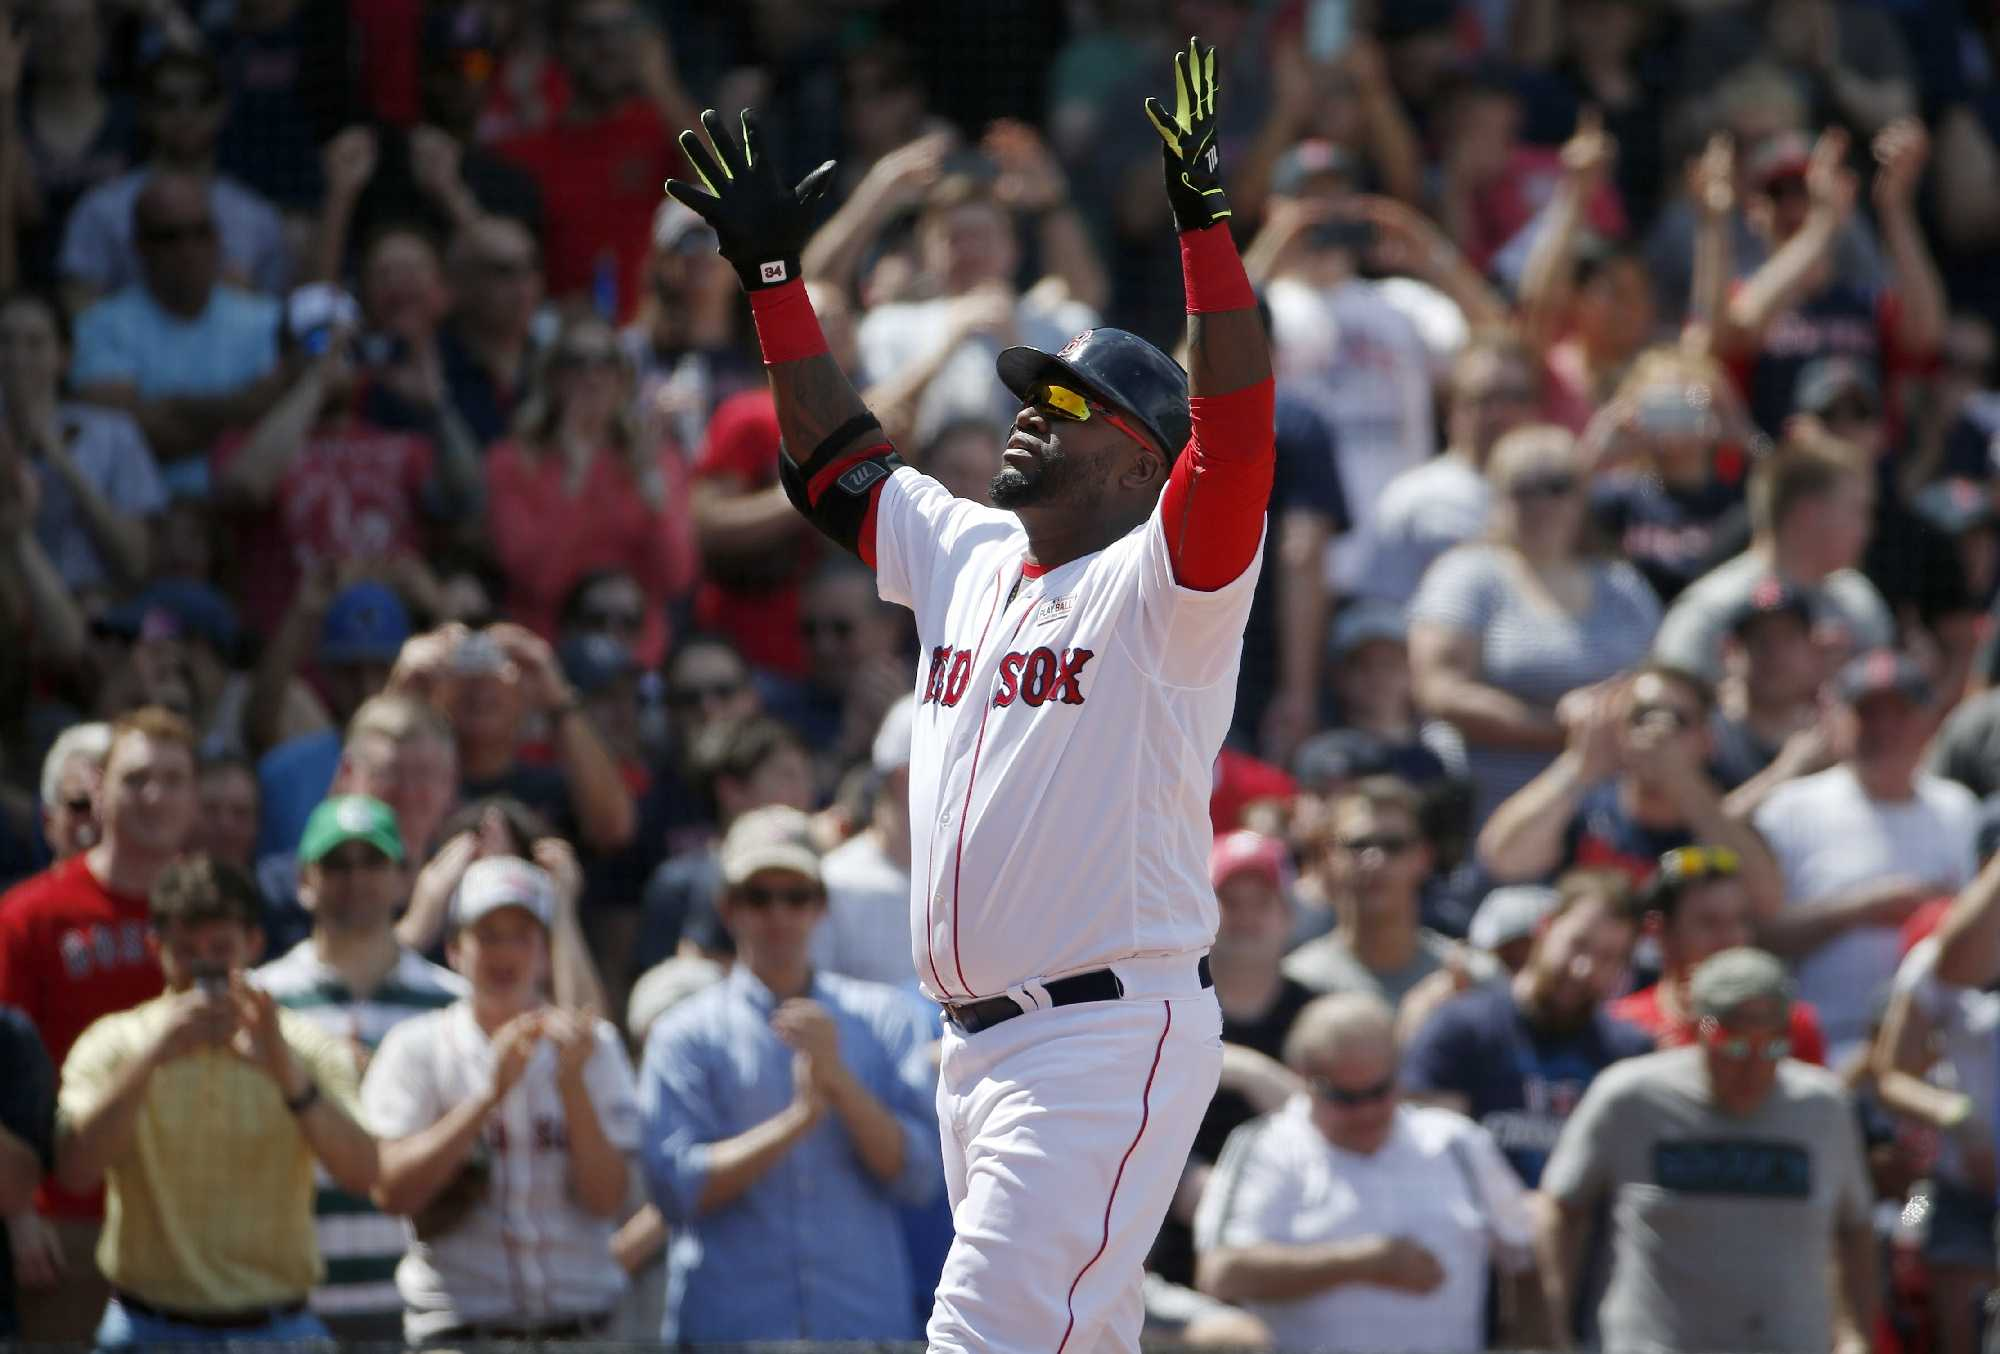 Boston Red Sox Set to Retire David Ortiz's Number